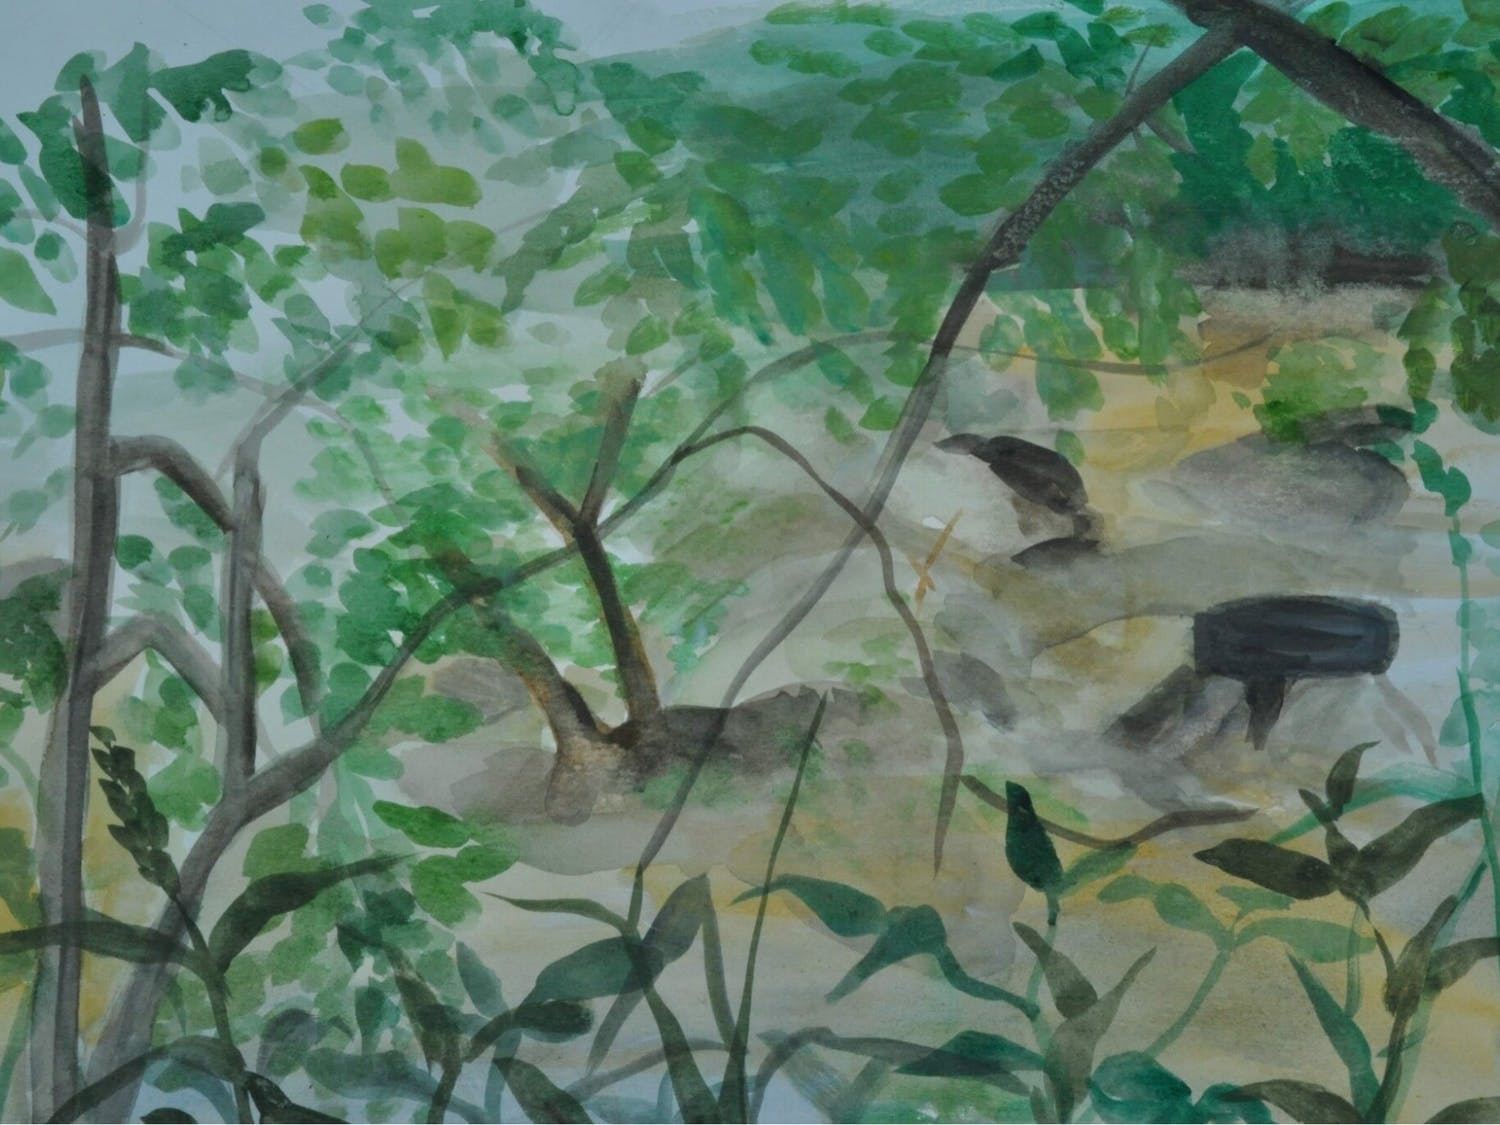 """Haw River,"" by Sheemoo Tatataw of the Karen Youth Art Group. The FRANK Gallery's many community outreach programs include Karen refugees ranging from ages 15 to 25 years old, many of whom were born in Burma or refugee camps in Thailand. Photo courtesy of the FRANK Gallery."